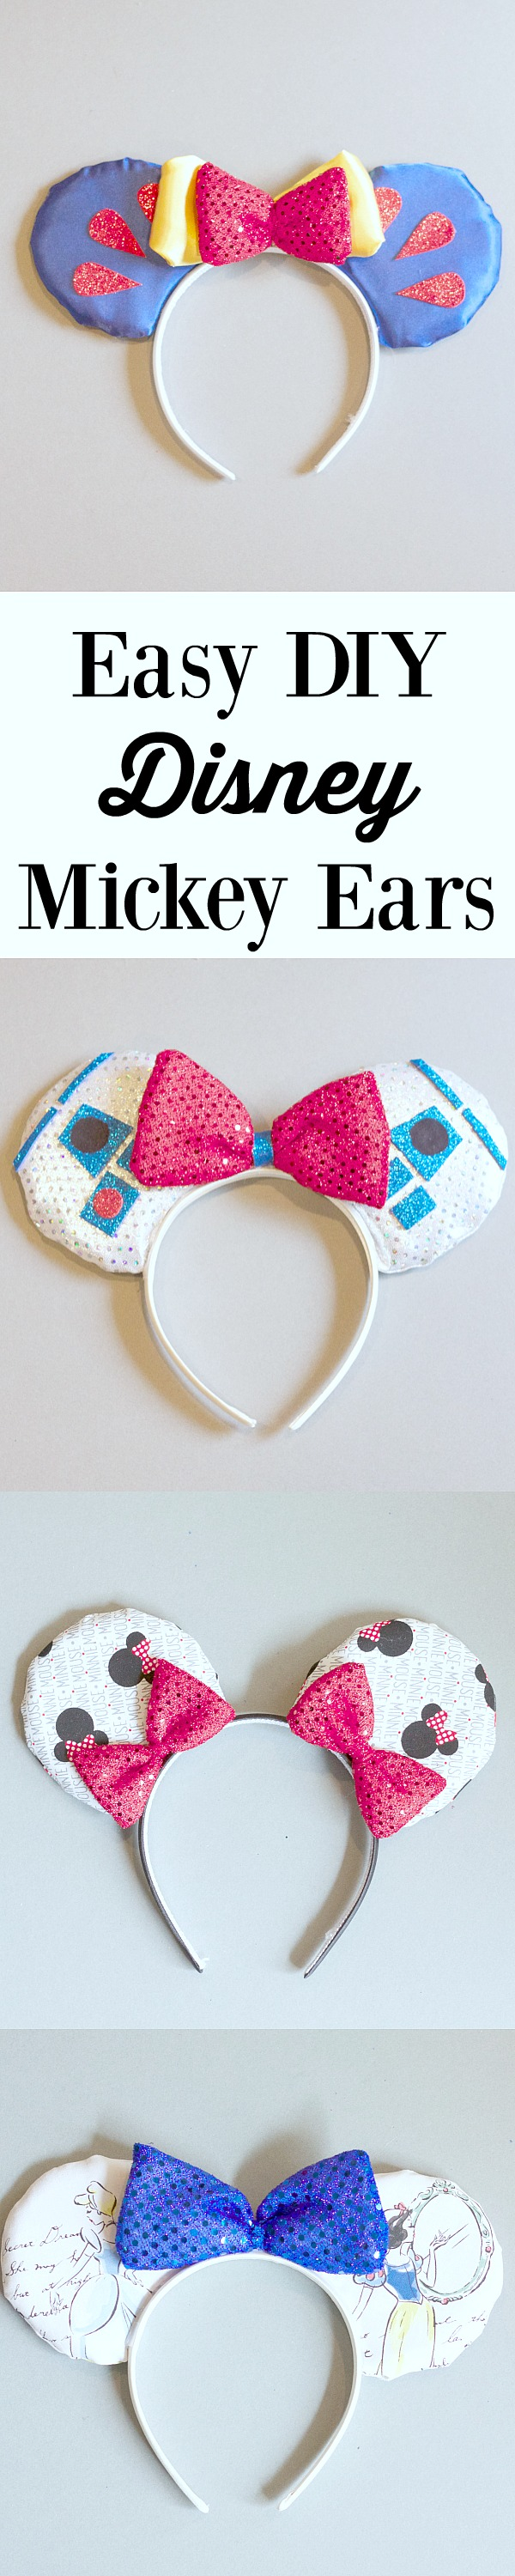 Diy Disney Mickey Ears Houston Mommy And Lifestyle Blogger Moms